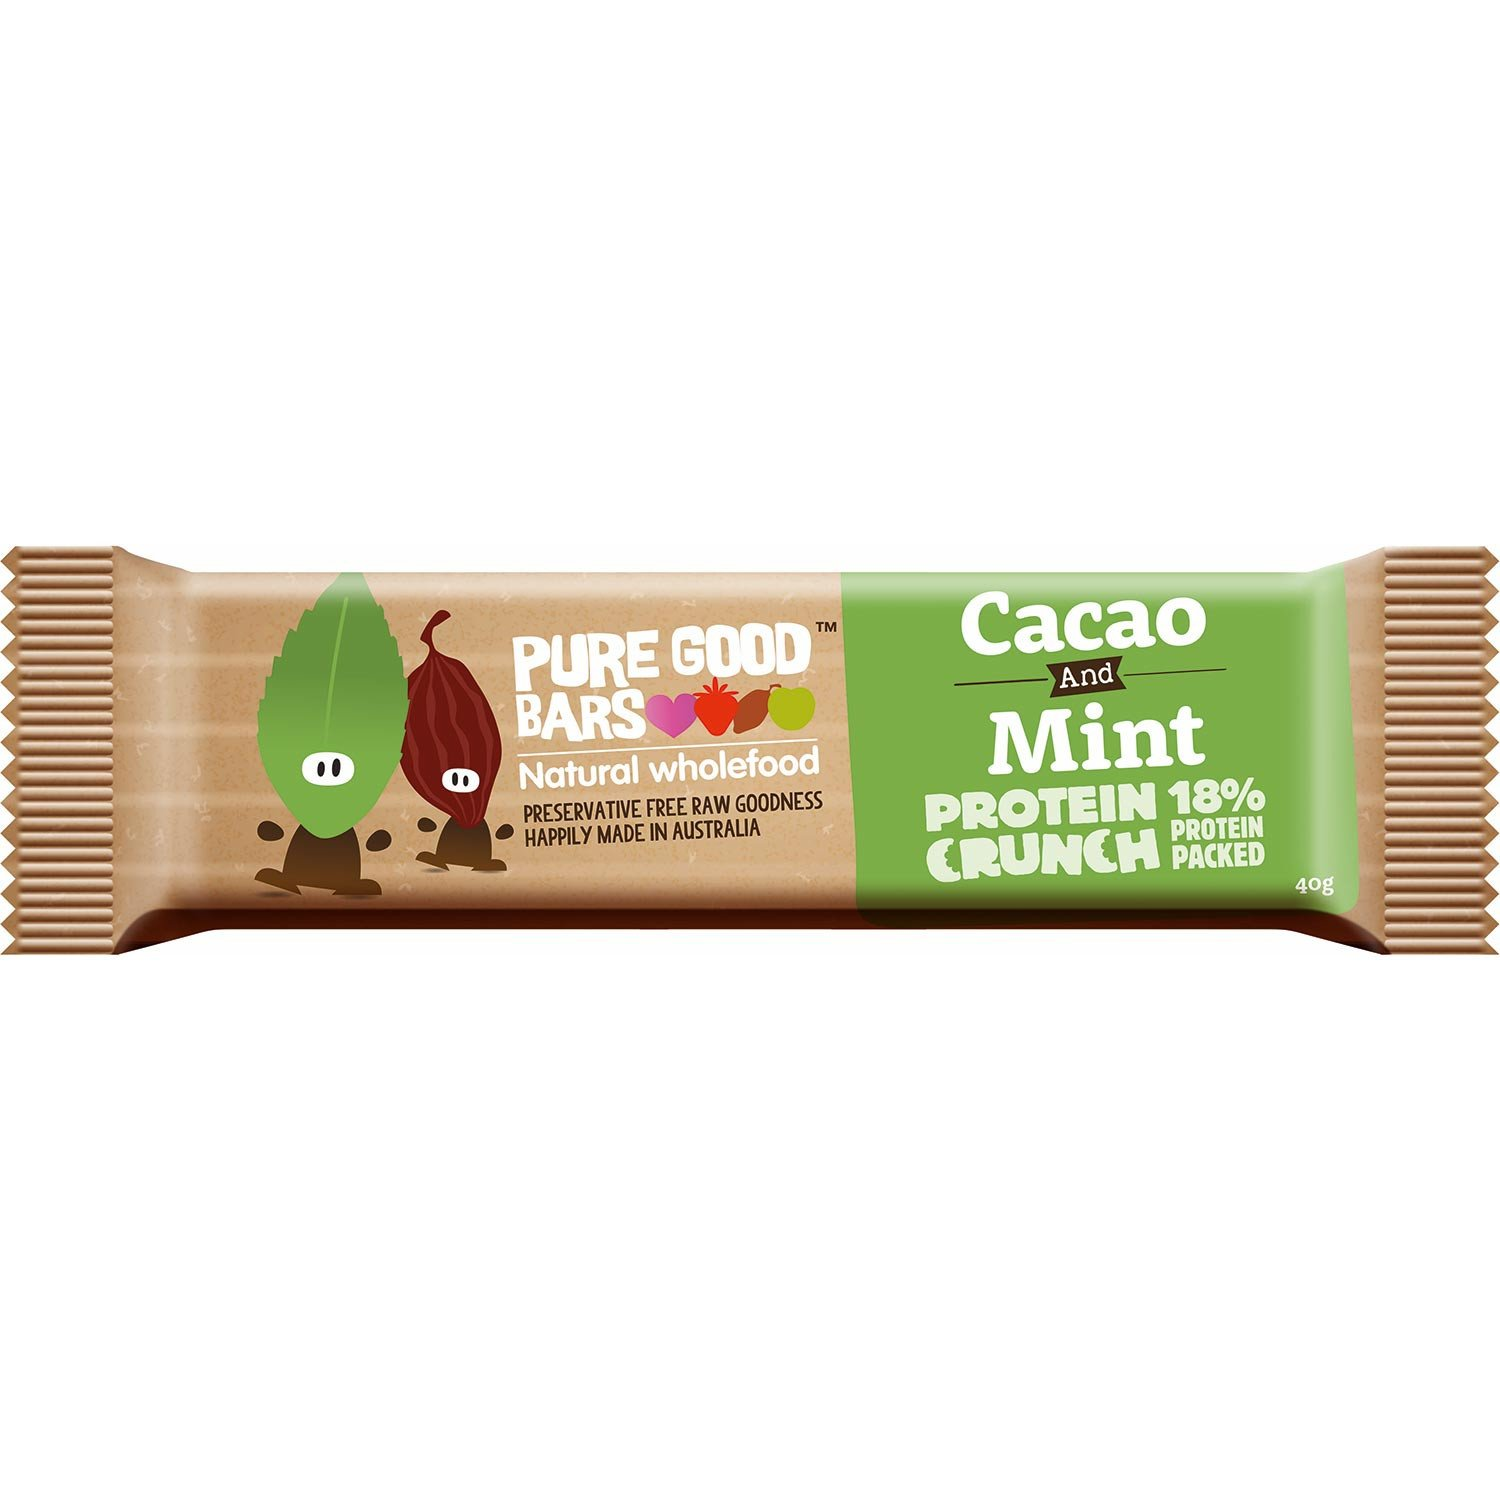 Pure Good Bars -Cacao & Mint Protein Crunch, 40g